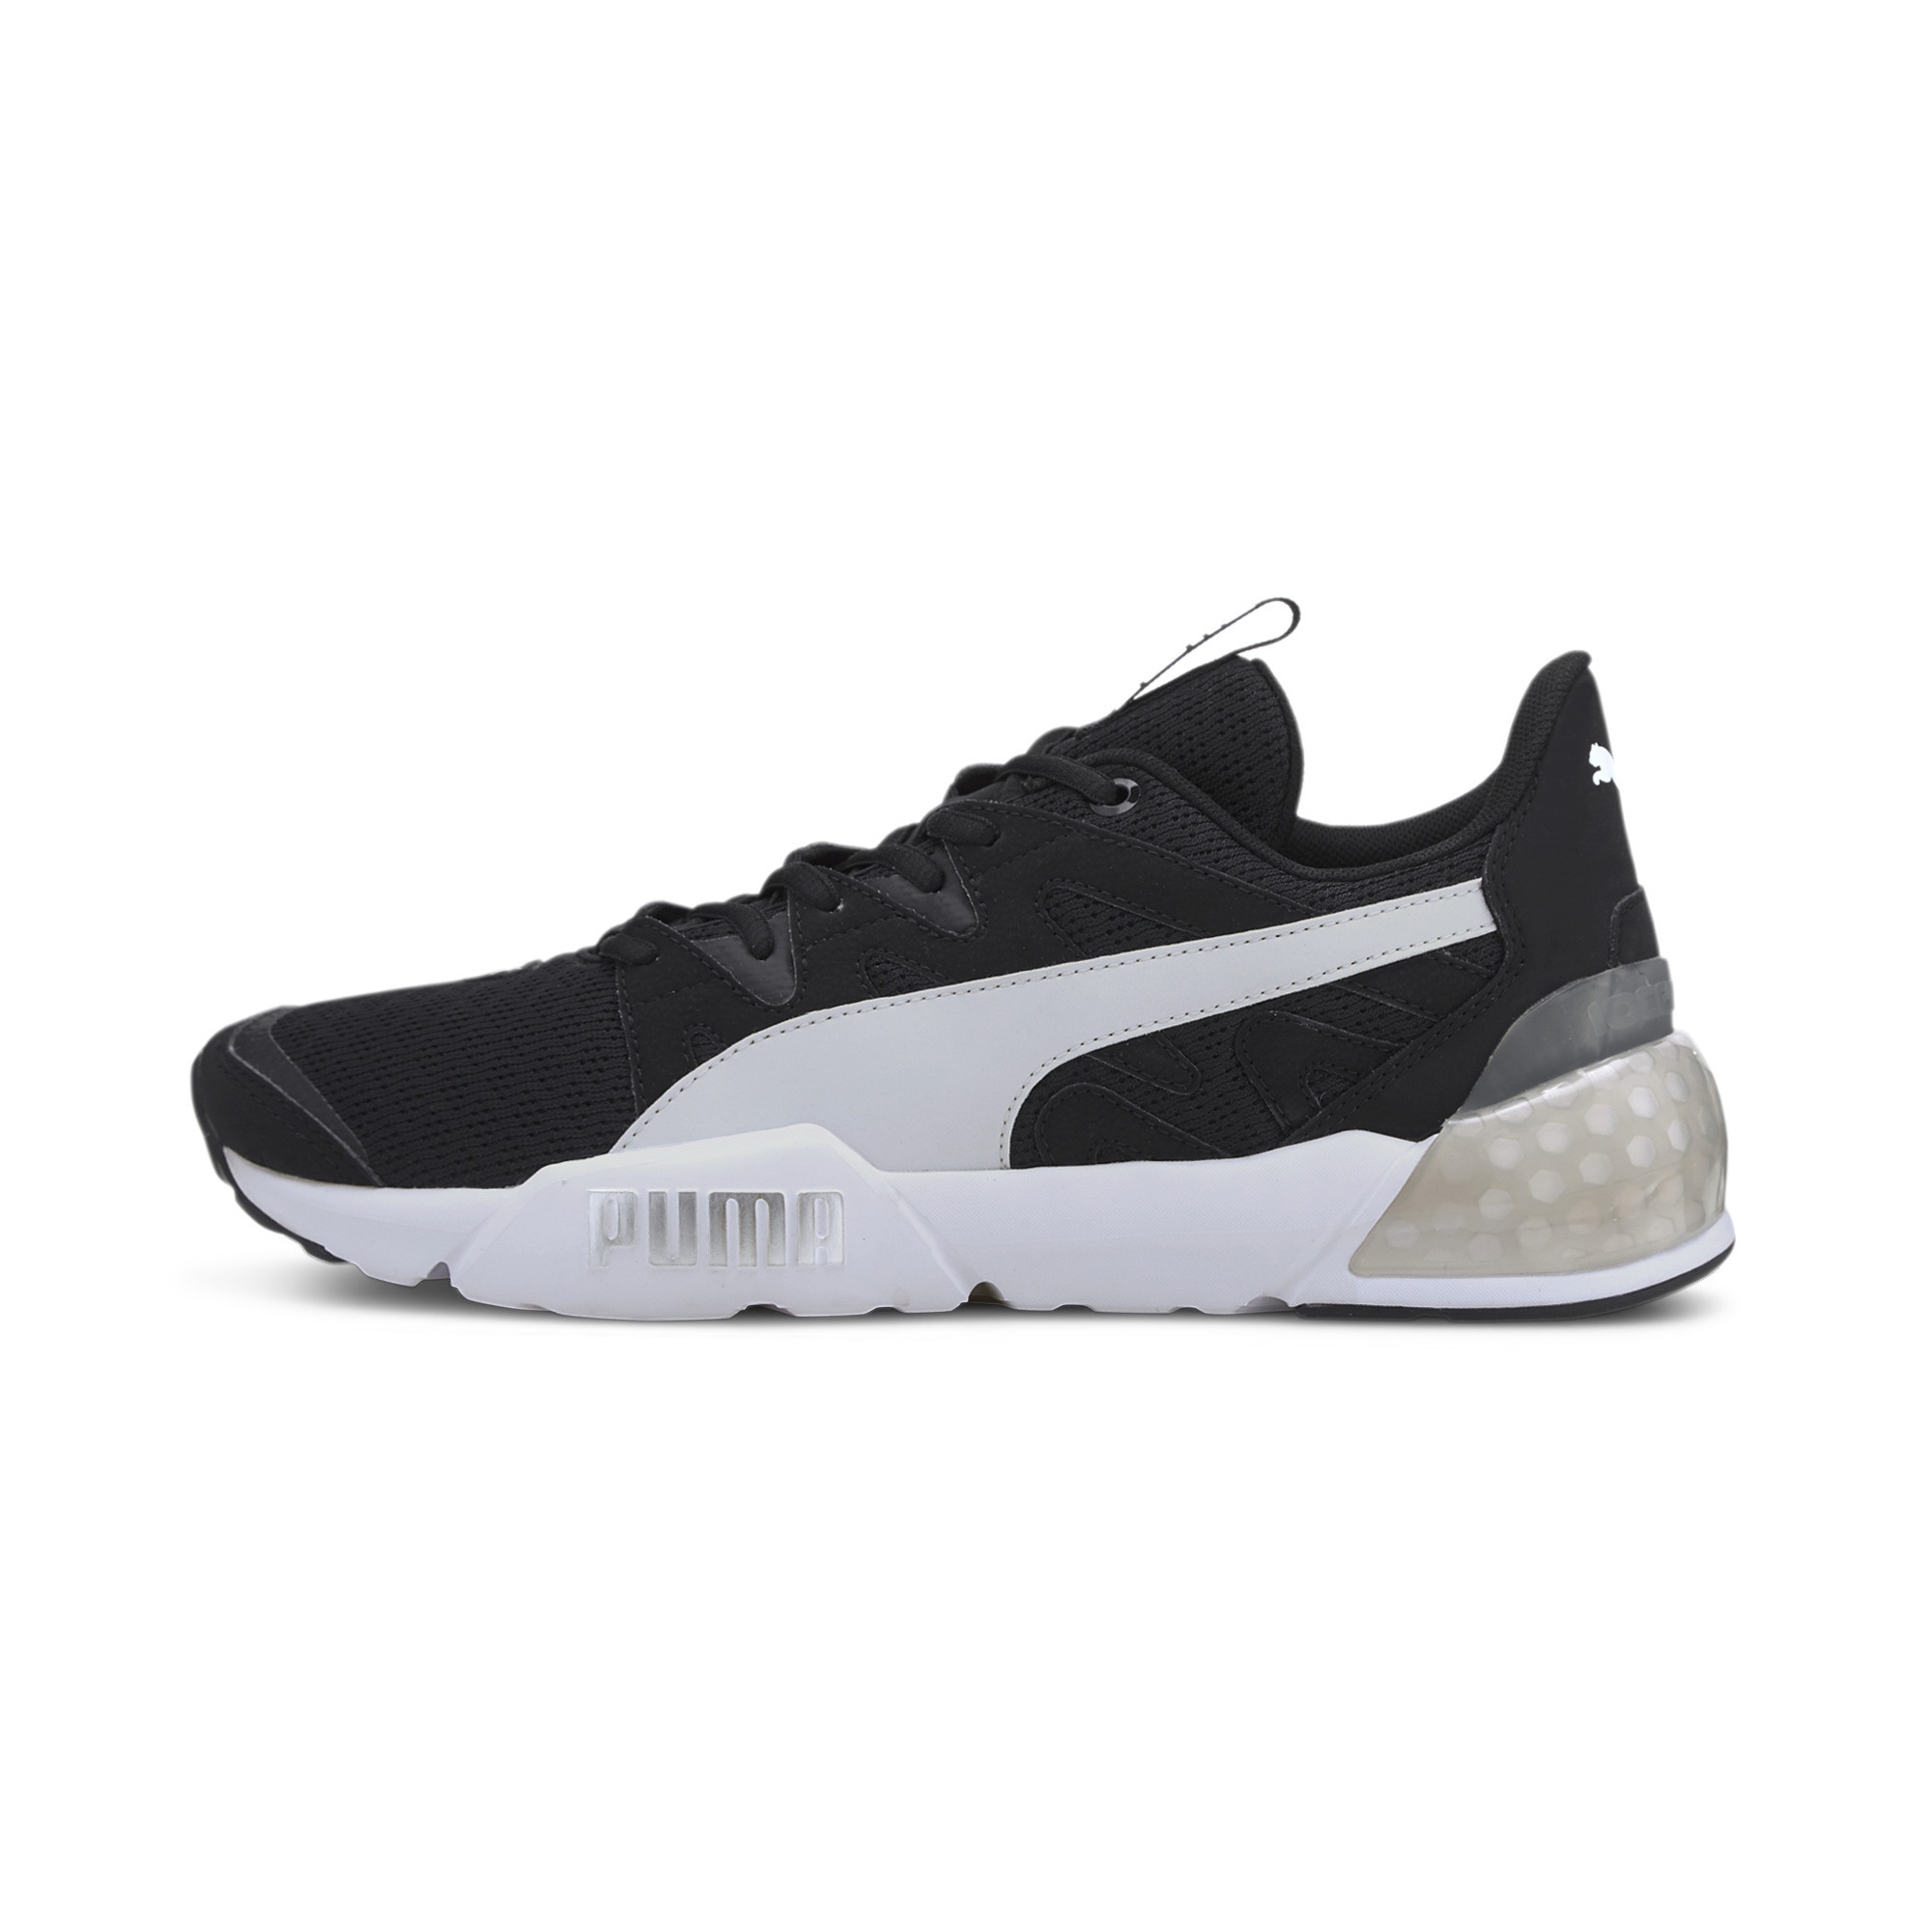 PUMA-Men-039-s-CELL-Pharos-Training-Shoes thumbnail 24